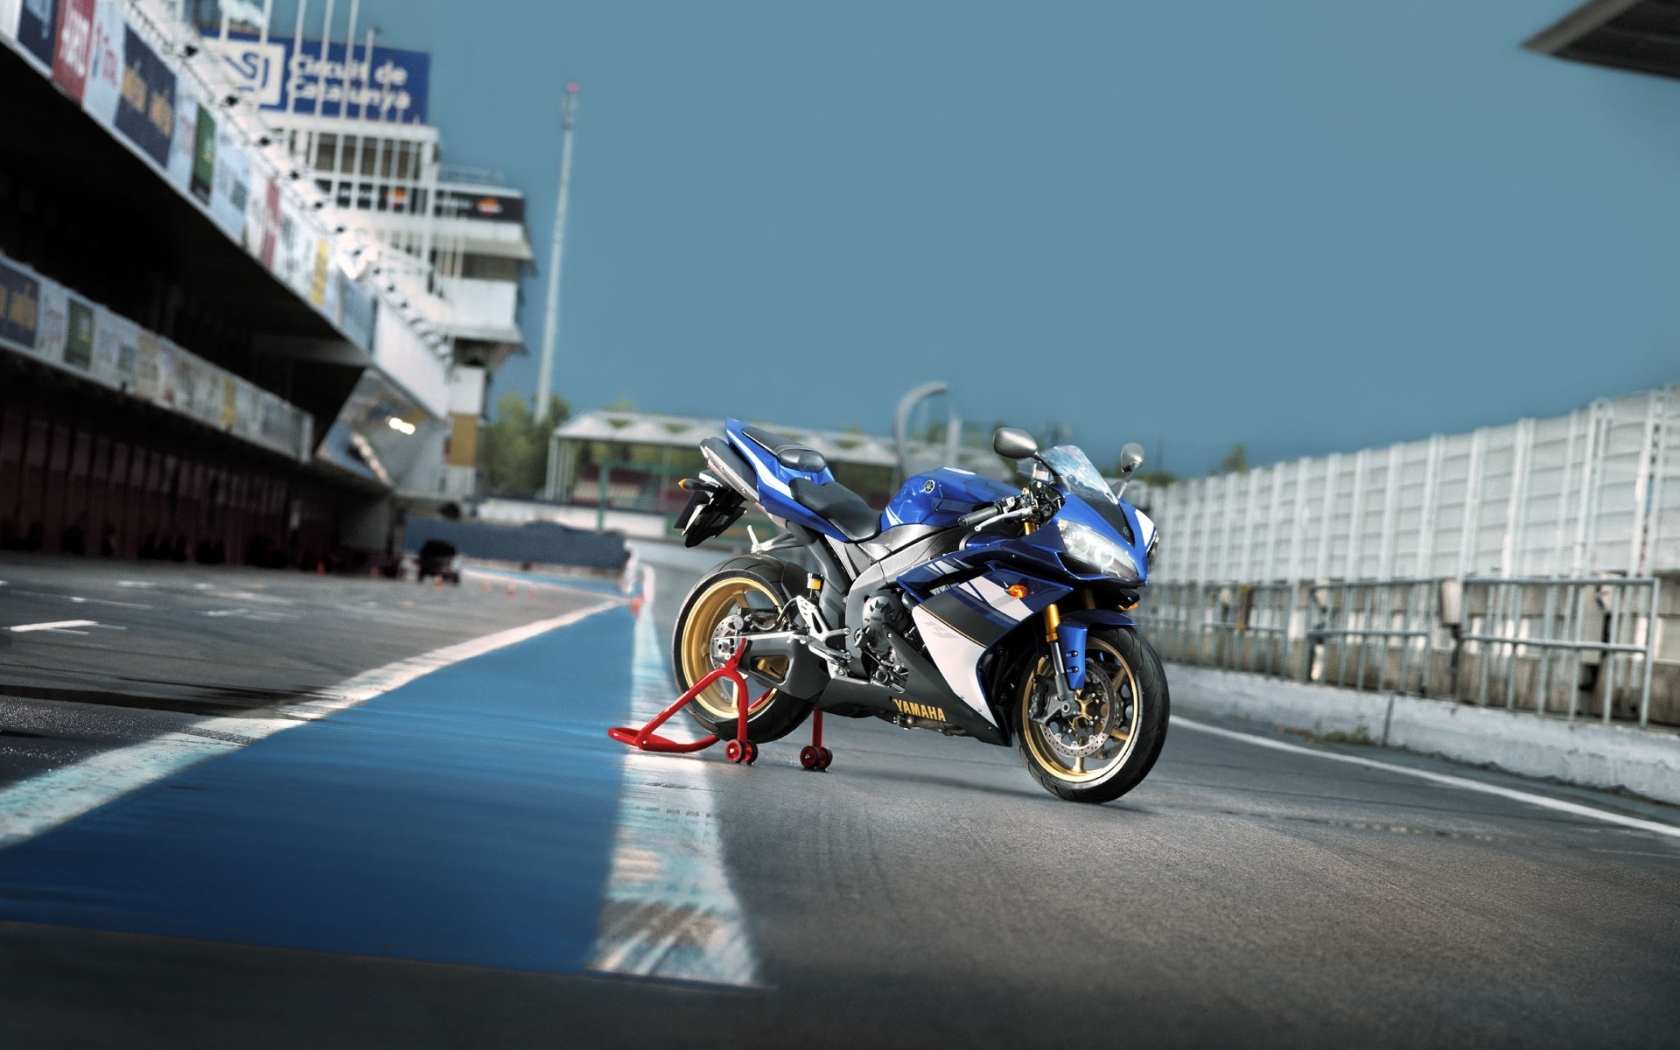 Yamaha YZF-R1 for 1680 x 1050 widescreen resolution